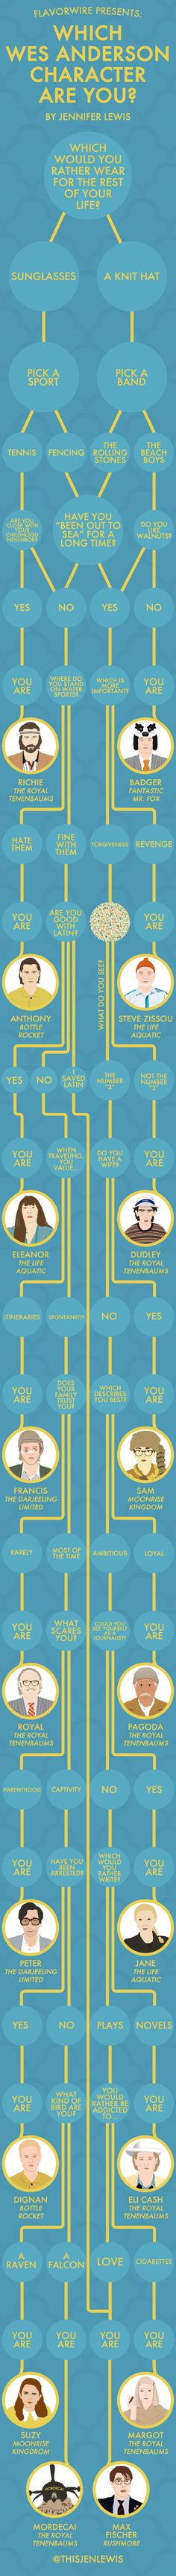 Are You a Royal Tenenbaum? A Suzy Bishop? This Infographic Can Tell You | Co.Create: Creativity \ Culture \ Commerce